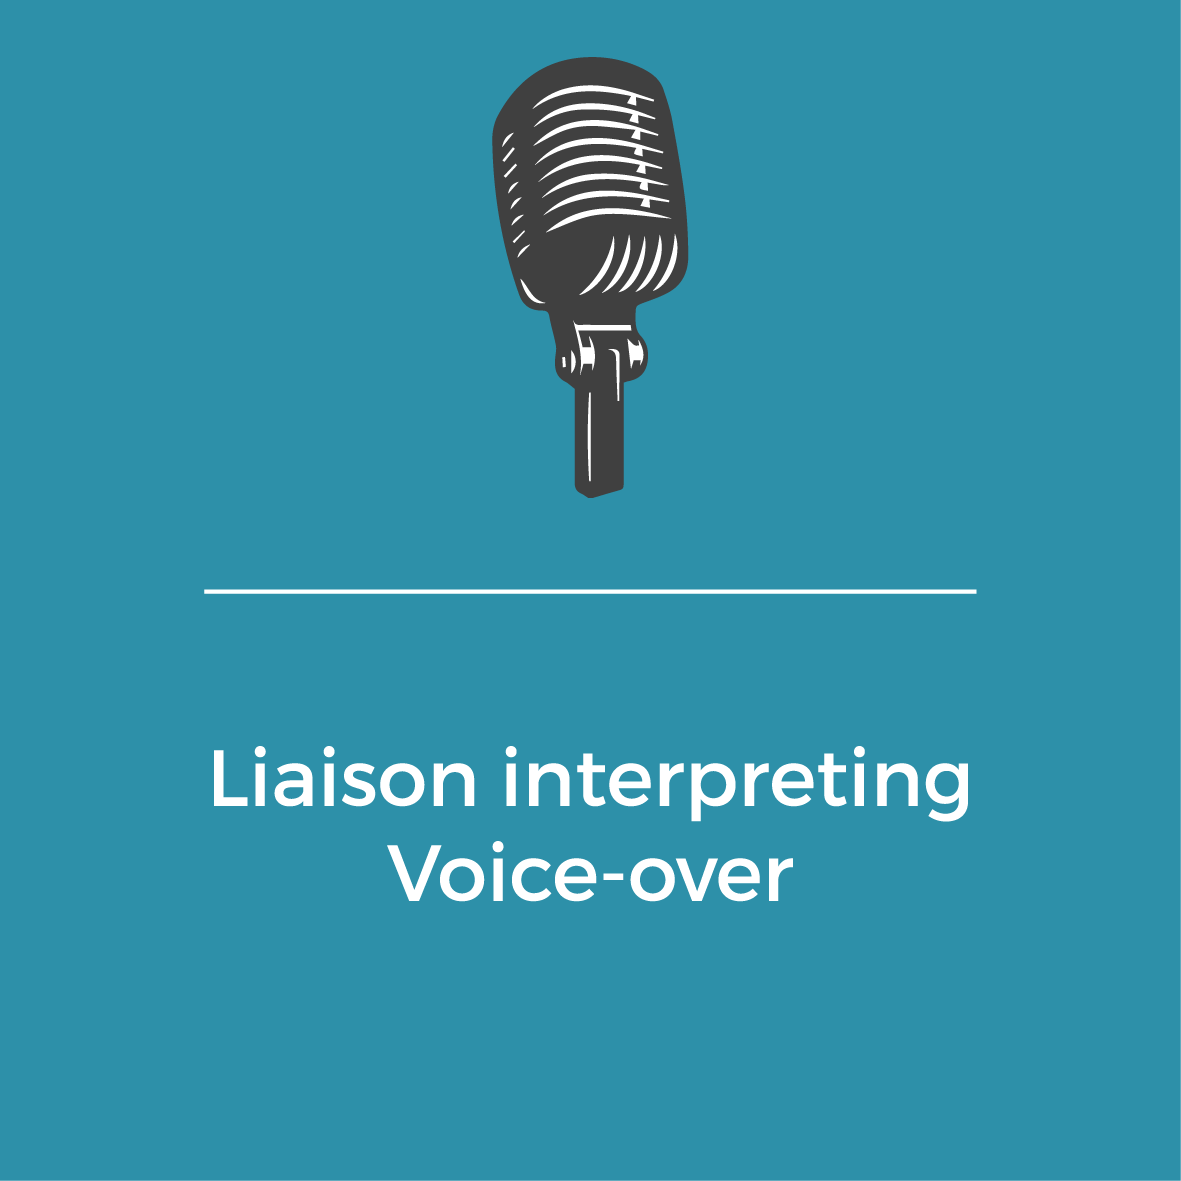 Services-Laison interpreting - Voice-over